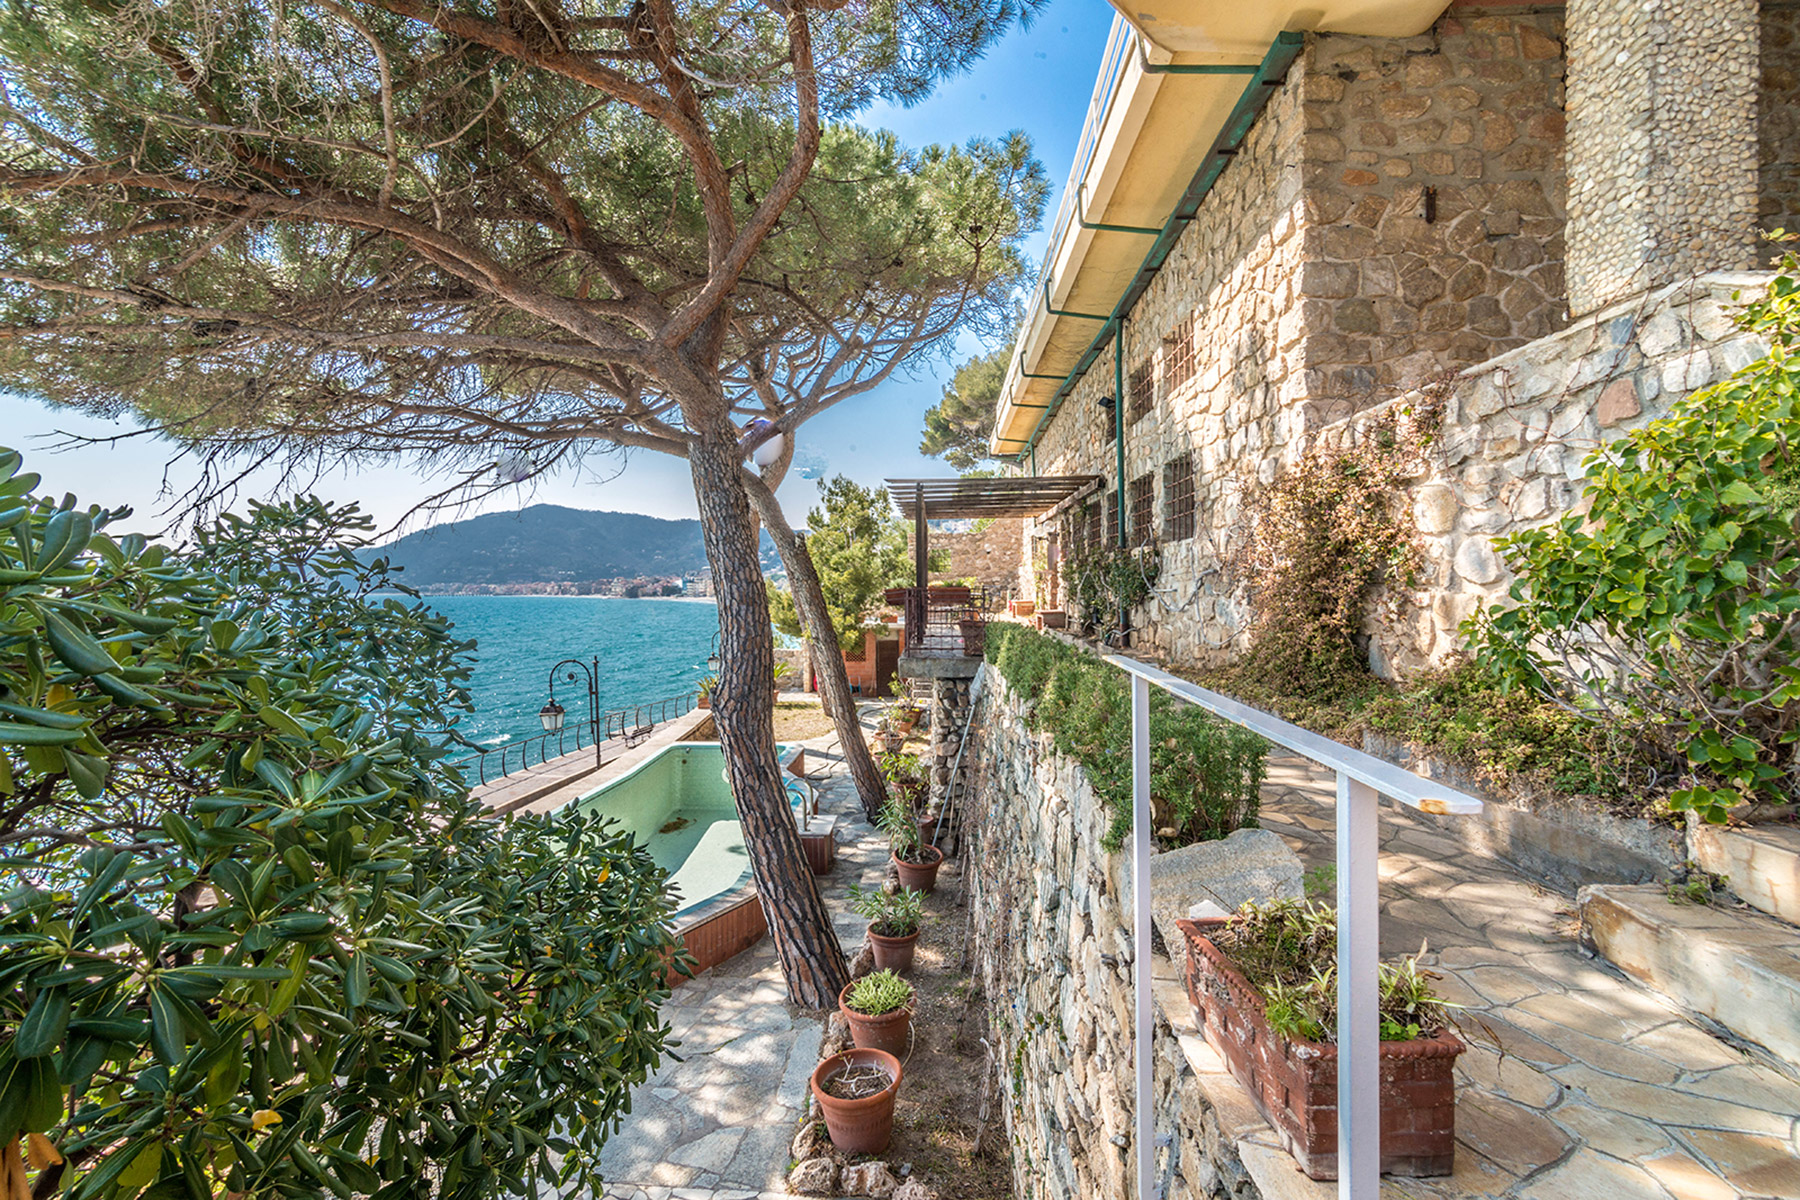 Additional photo for property listing at Magnificent seaview Villa in Alassio Passeggiata Luigi Cadorna Alassio, Savona 17021 Italien